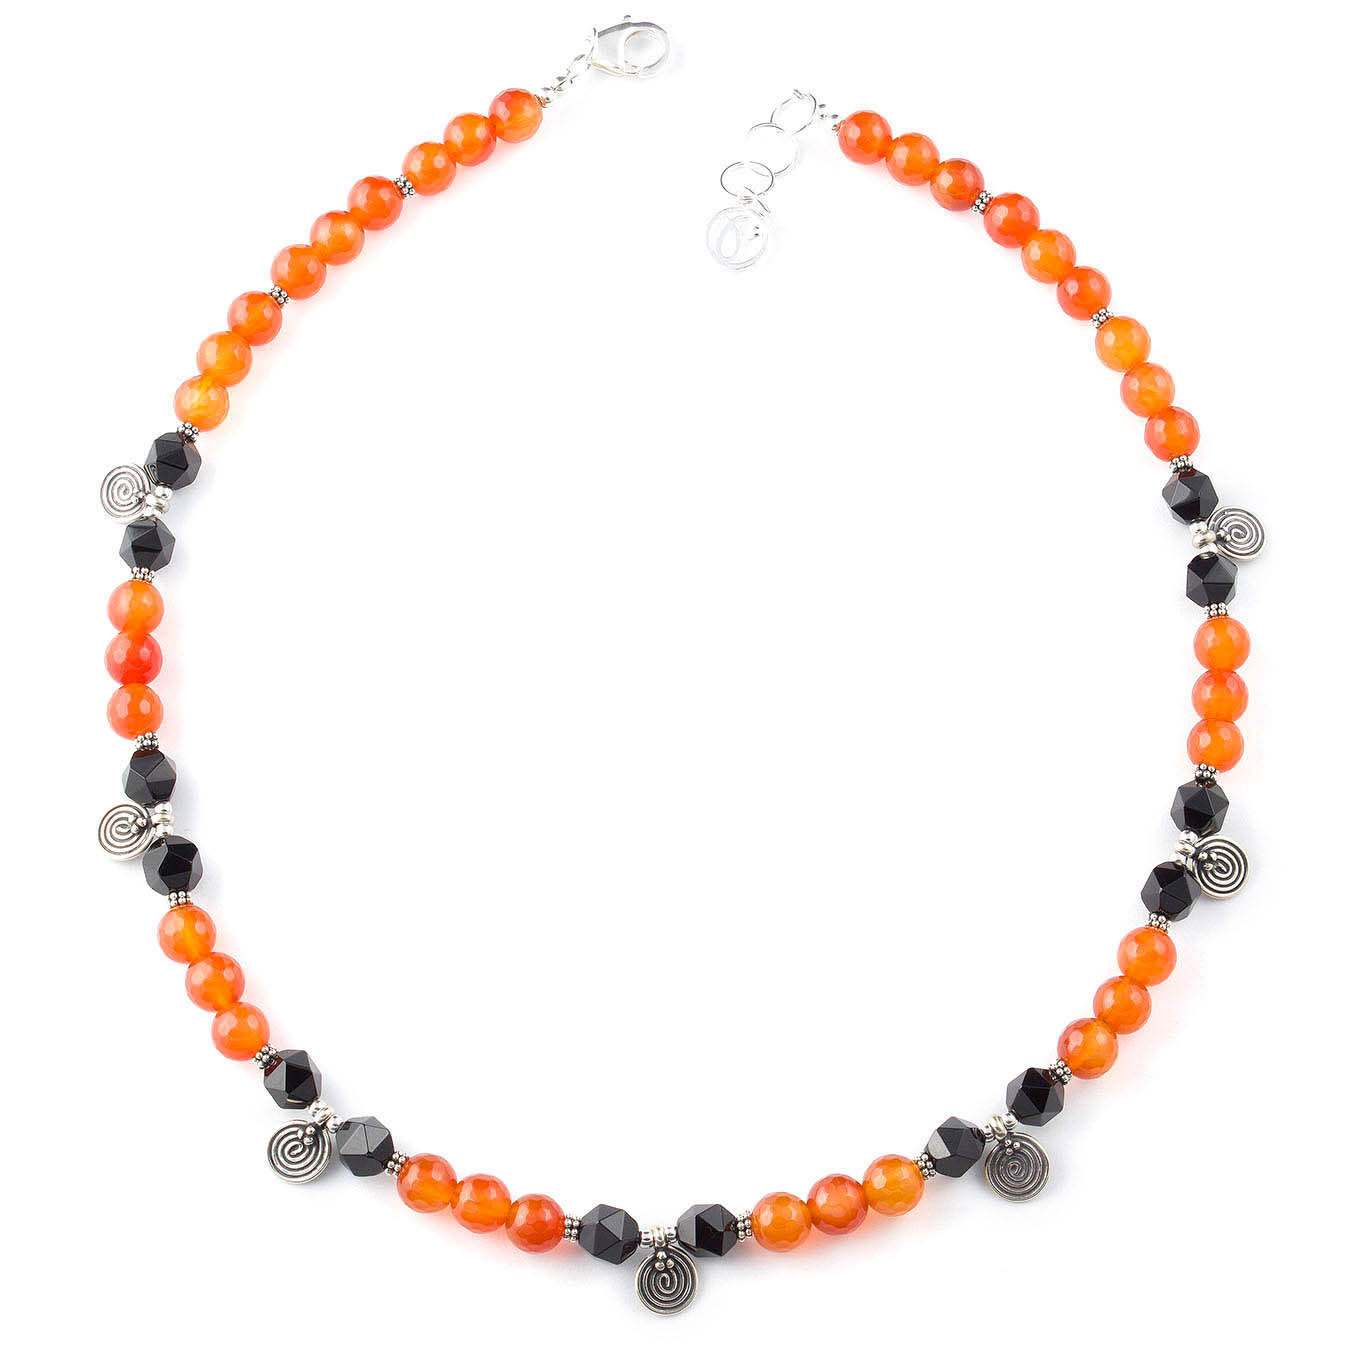 Black and red agate semi-precious gemstones beaded bali charm necklace